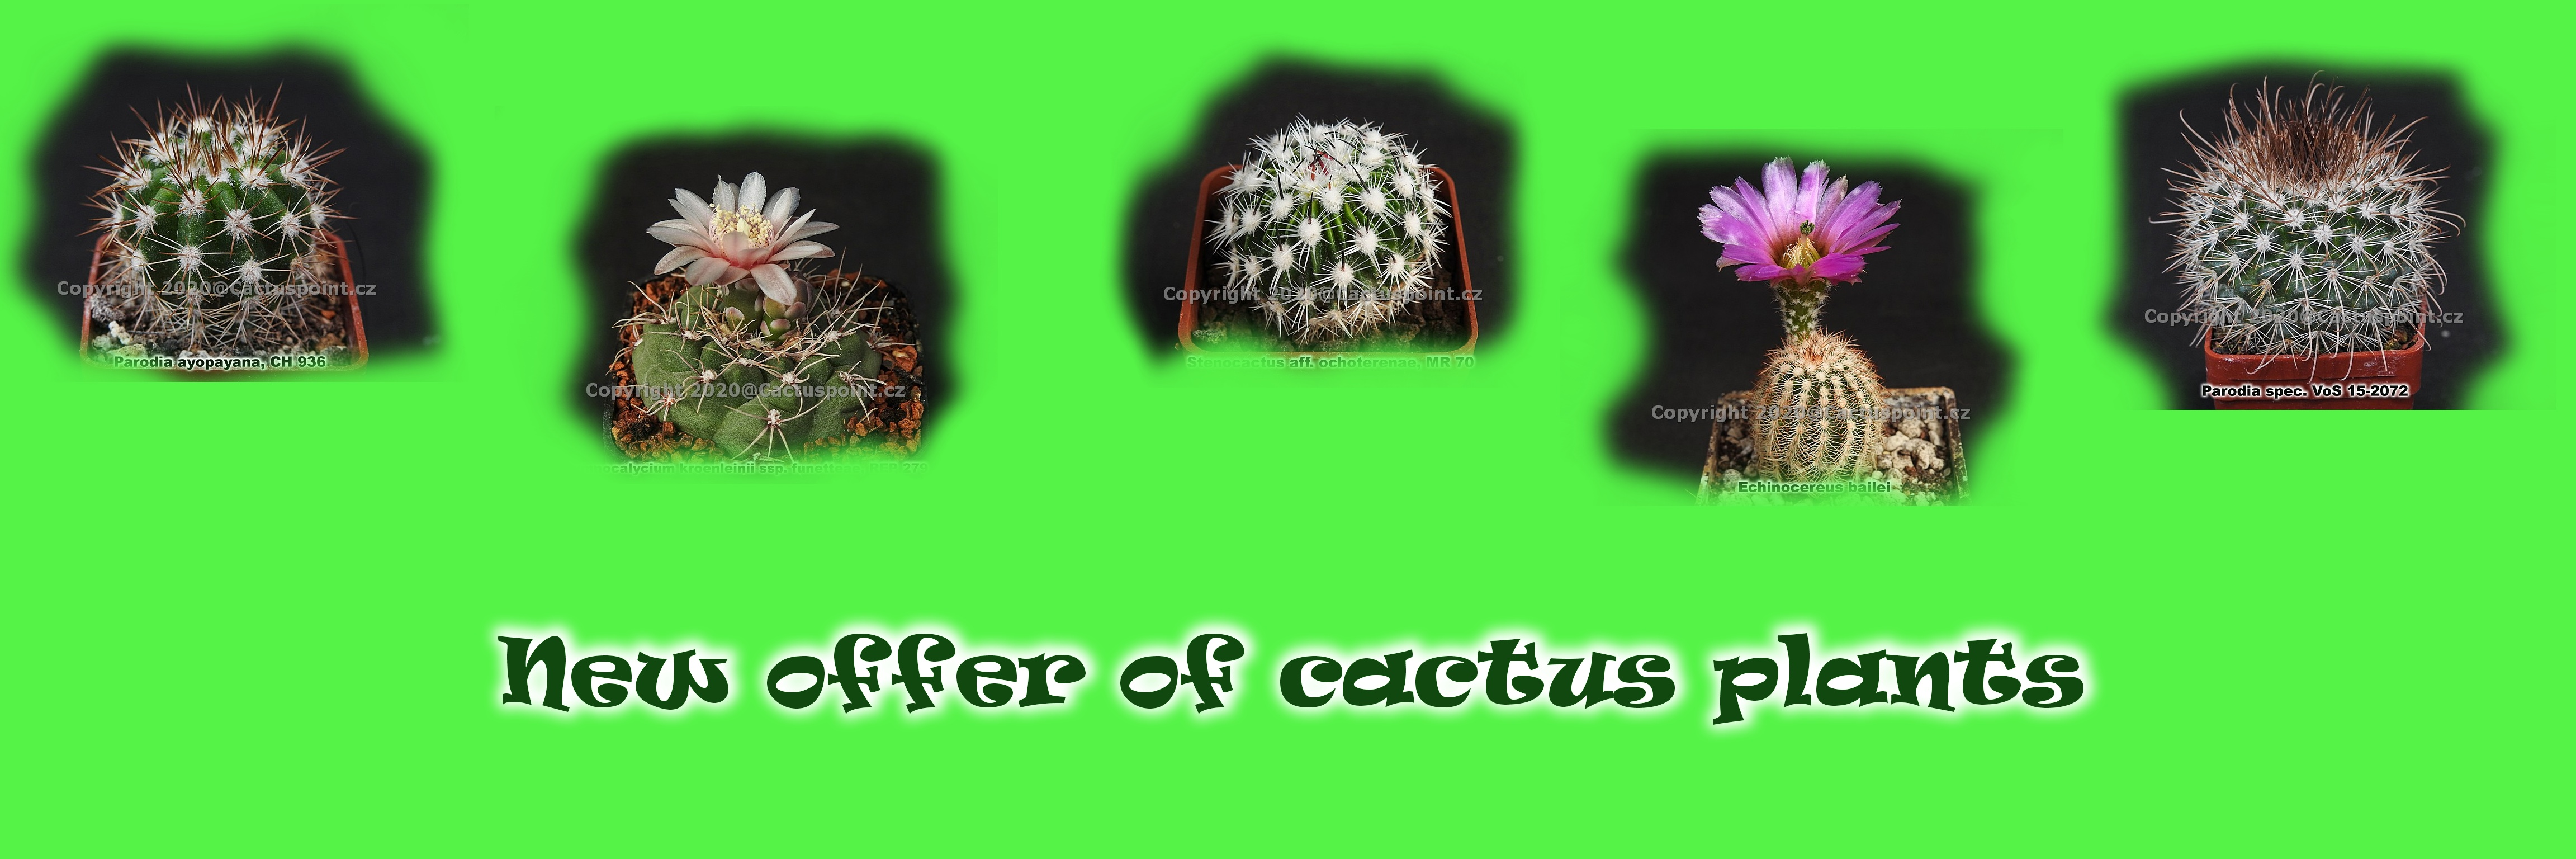 new-offer-of-cactus-plants